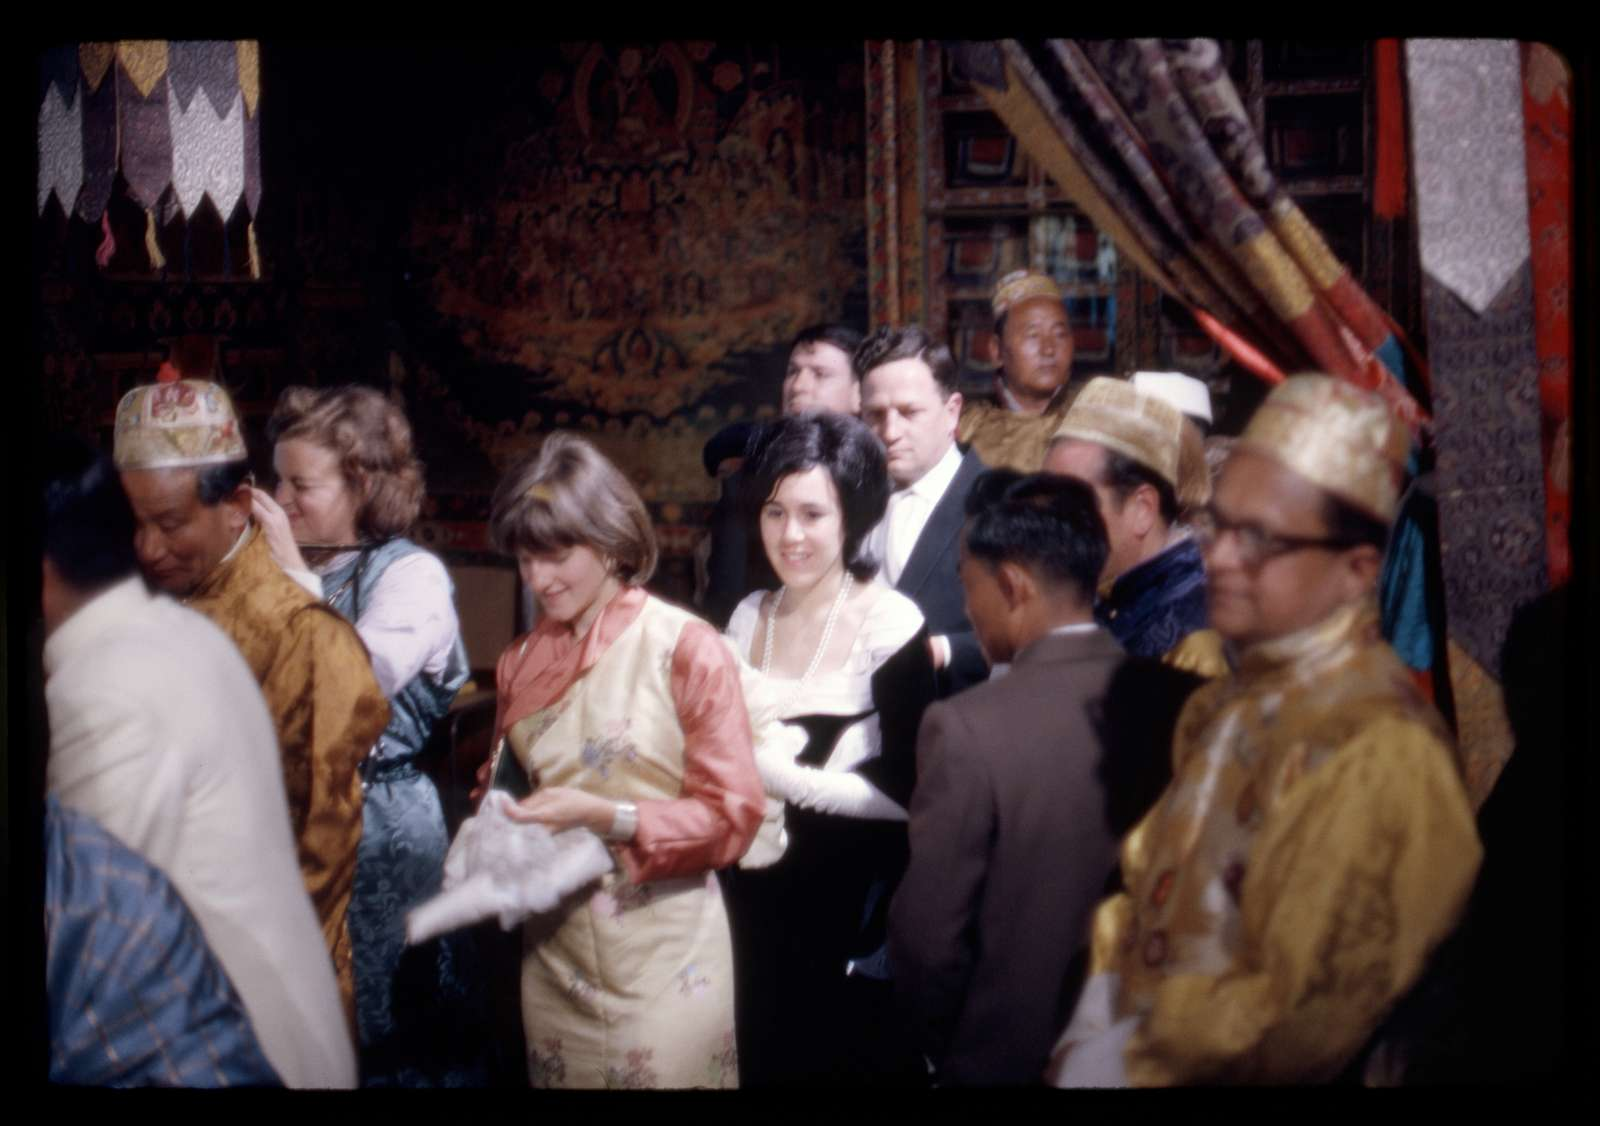 [Guests at the coronation of King Palden Thondup Namgyal, including Alice Kandell, Gangtok, Sikkim]